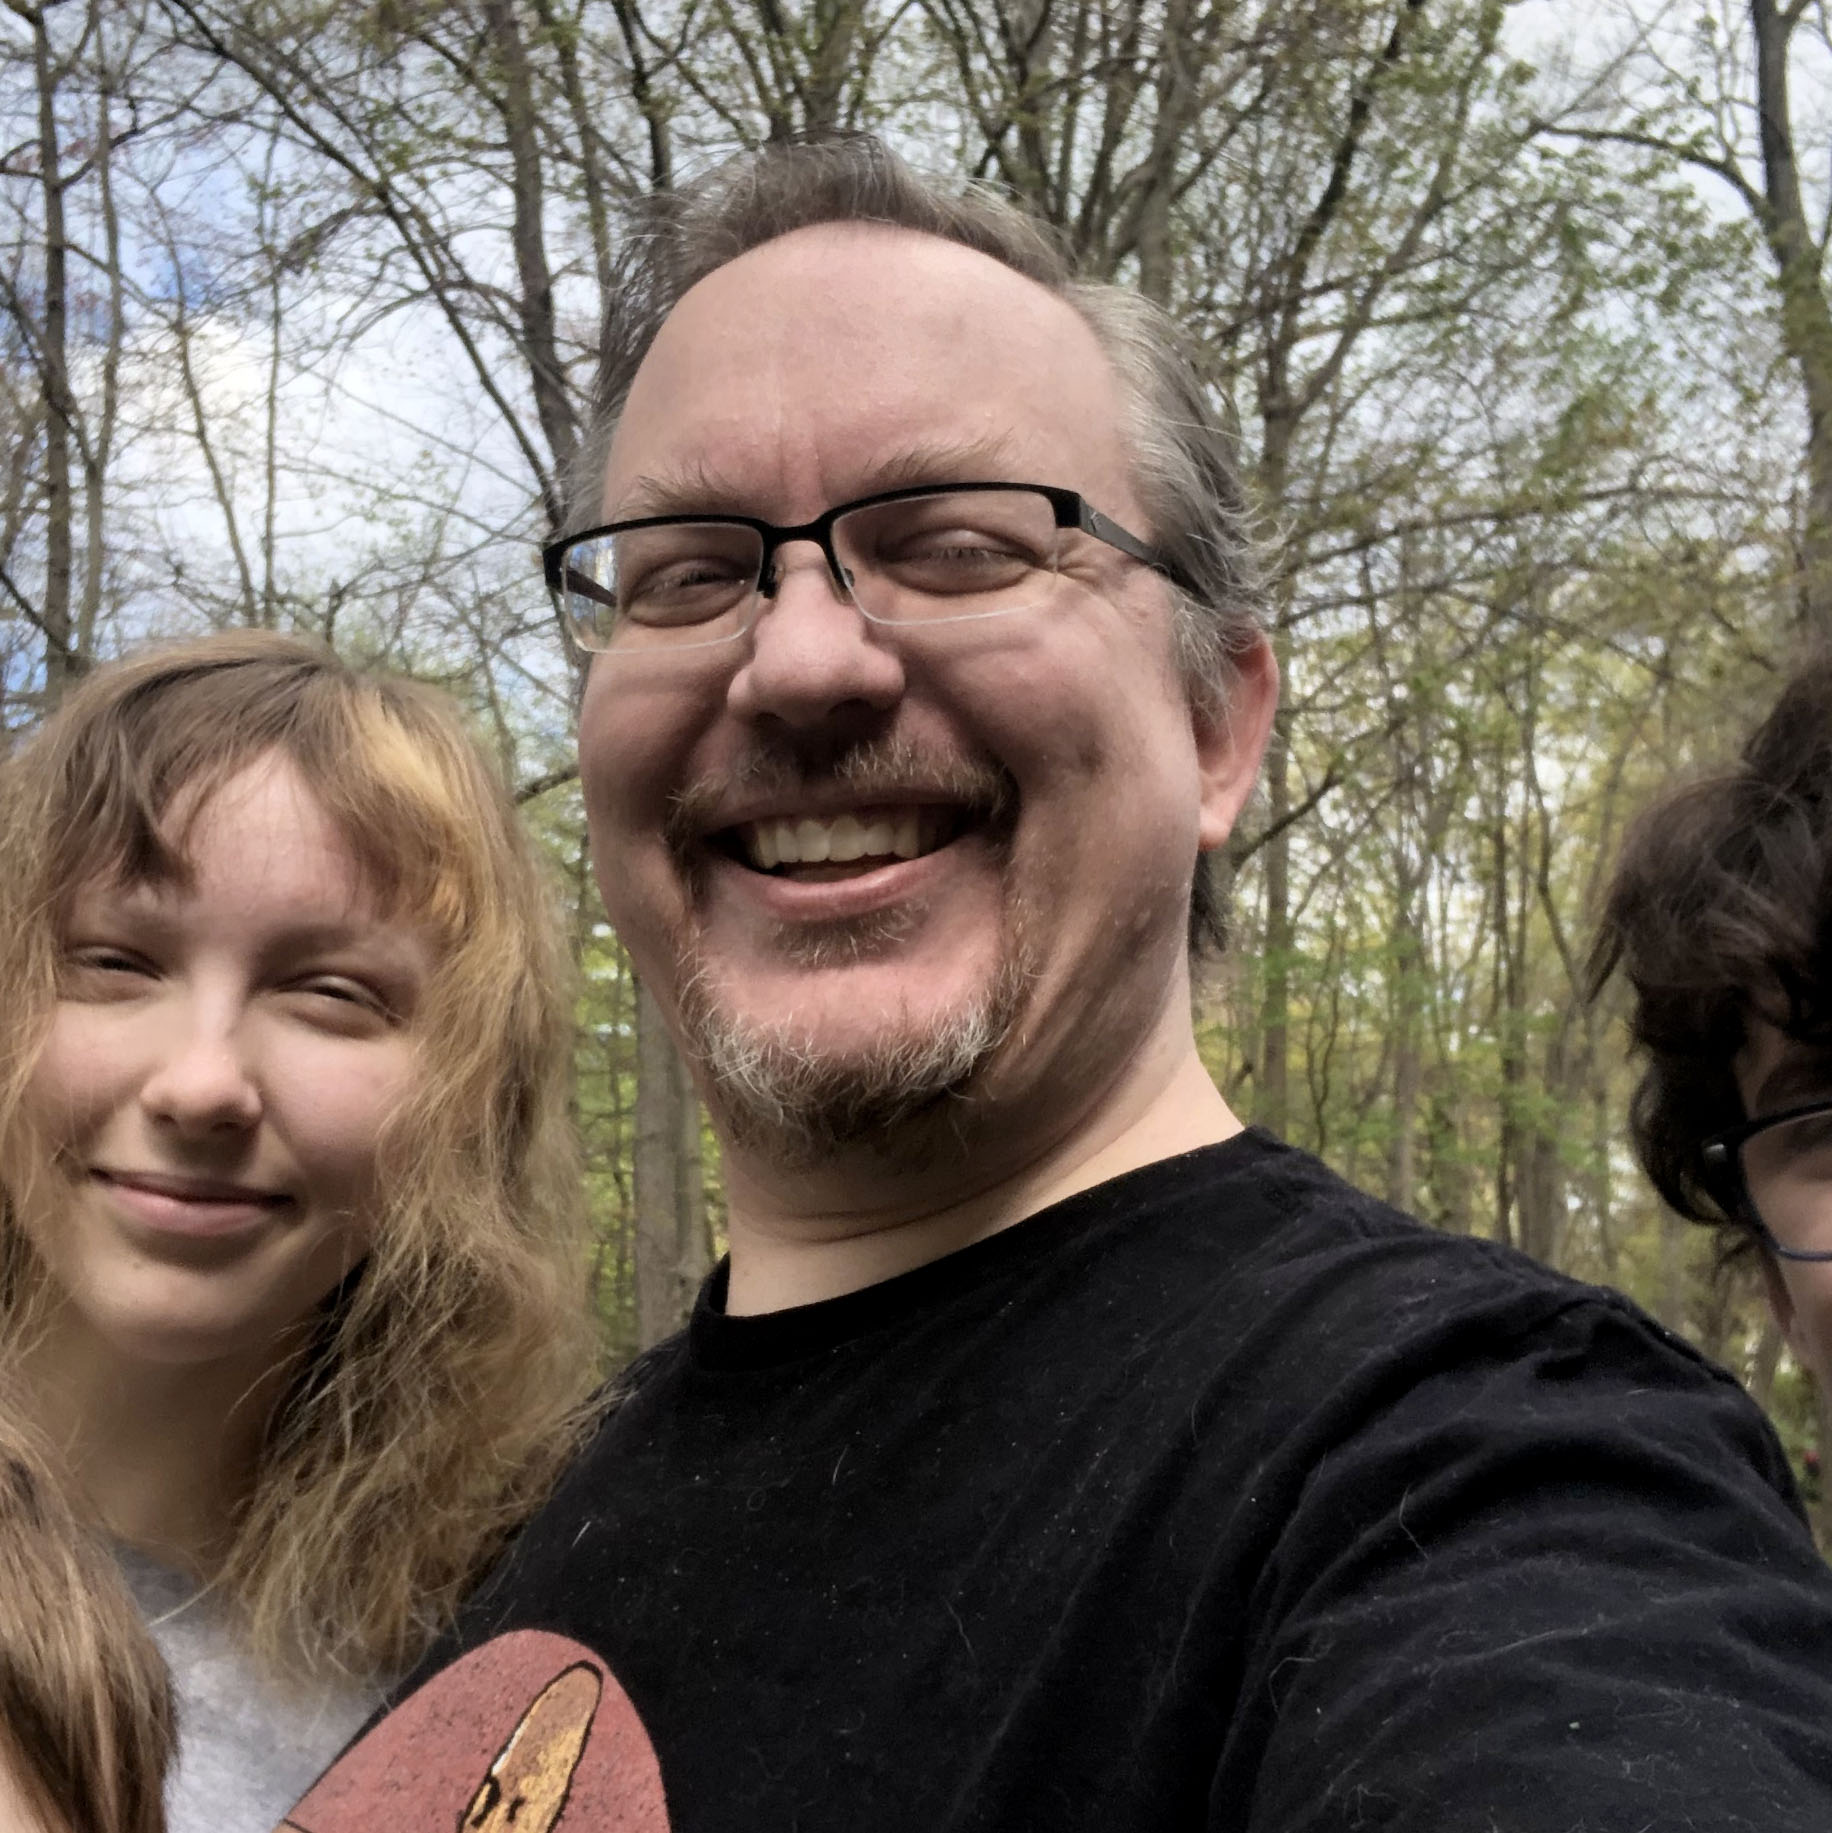 Josh smiling outdoors with two of his children